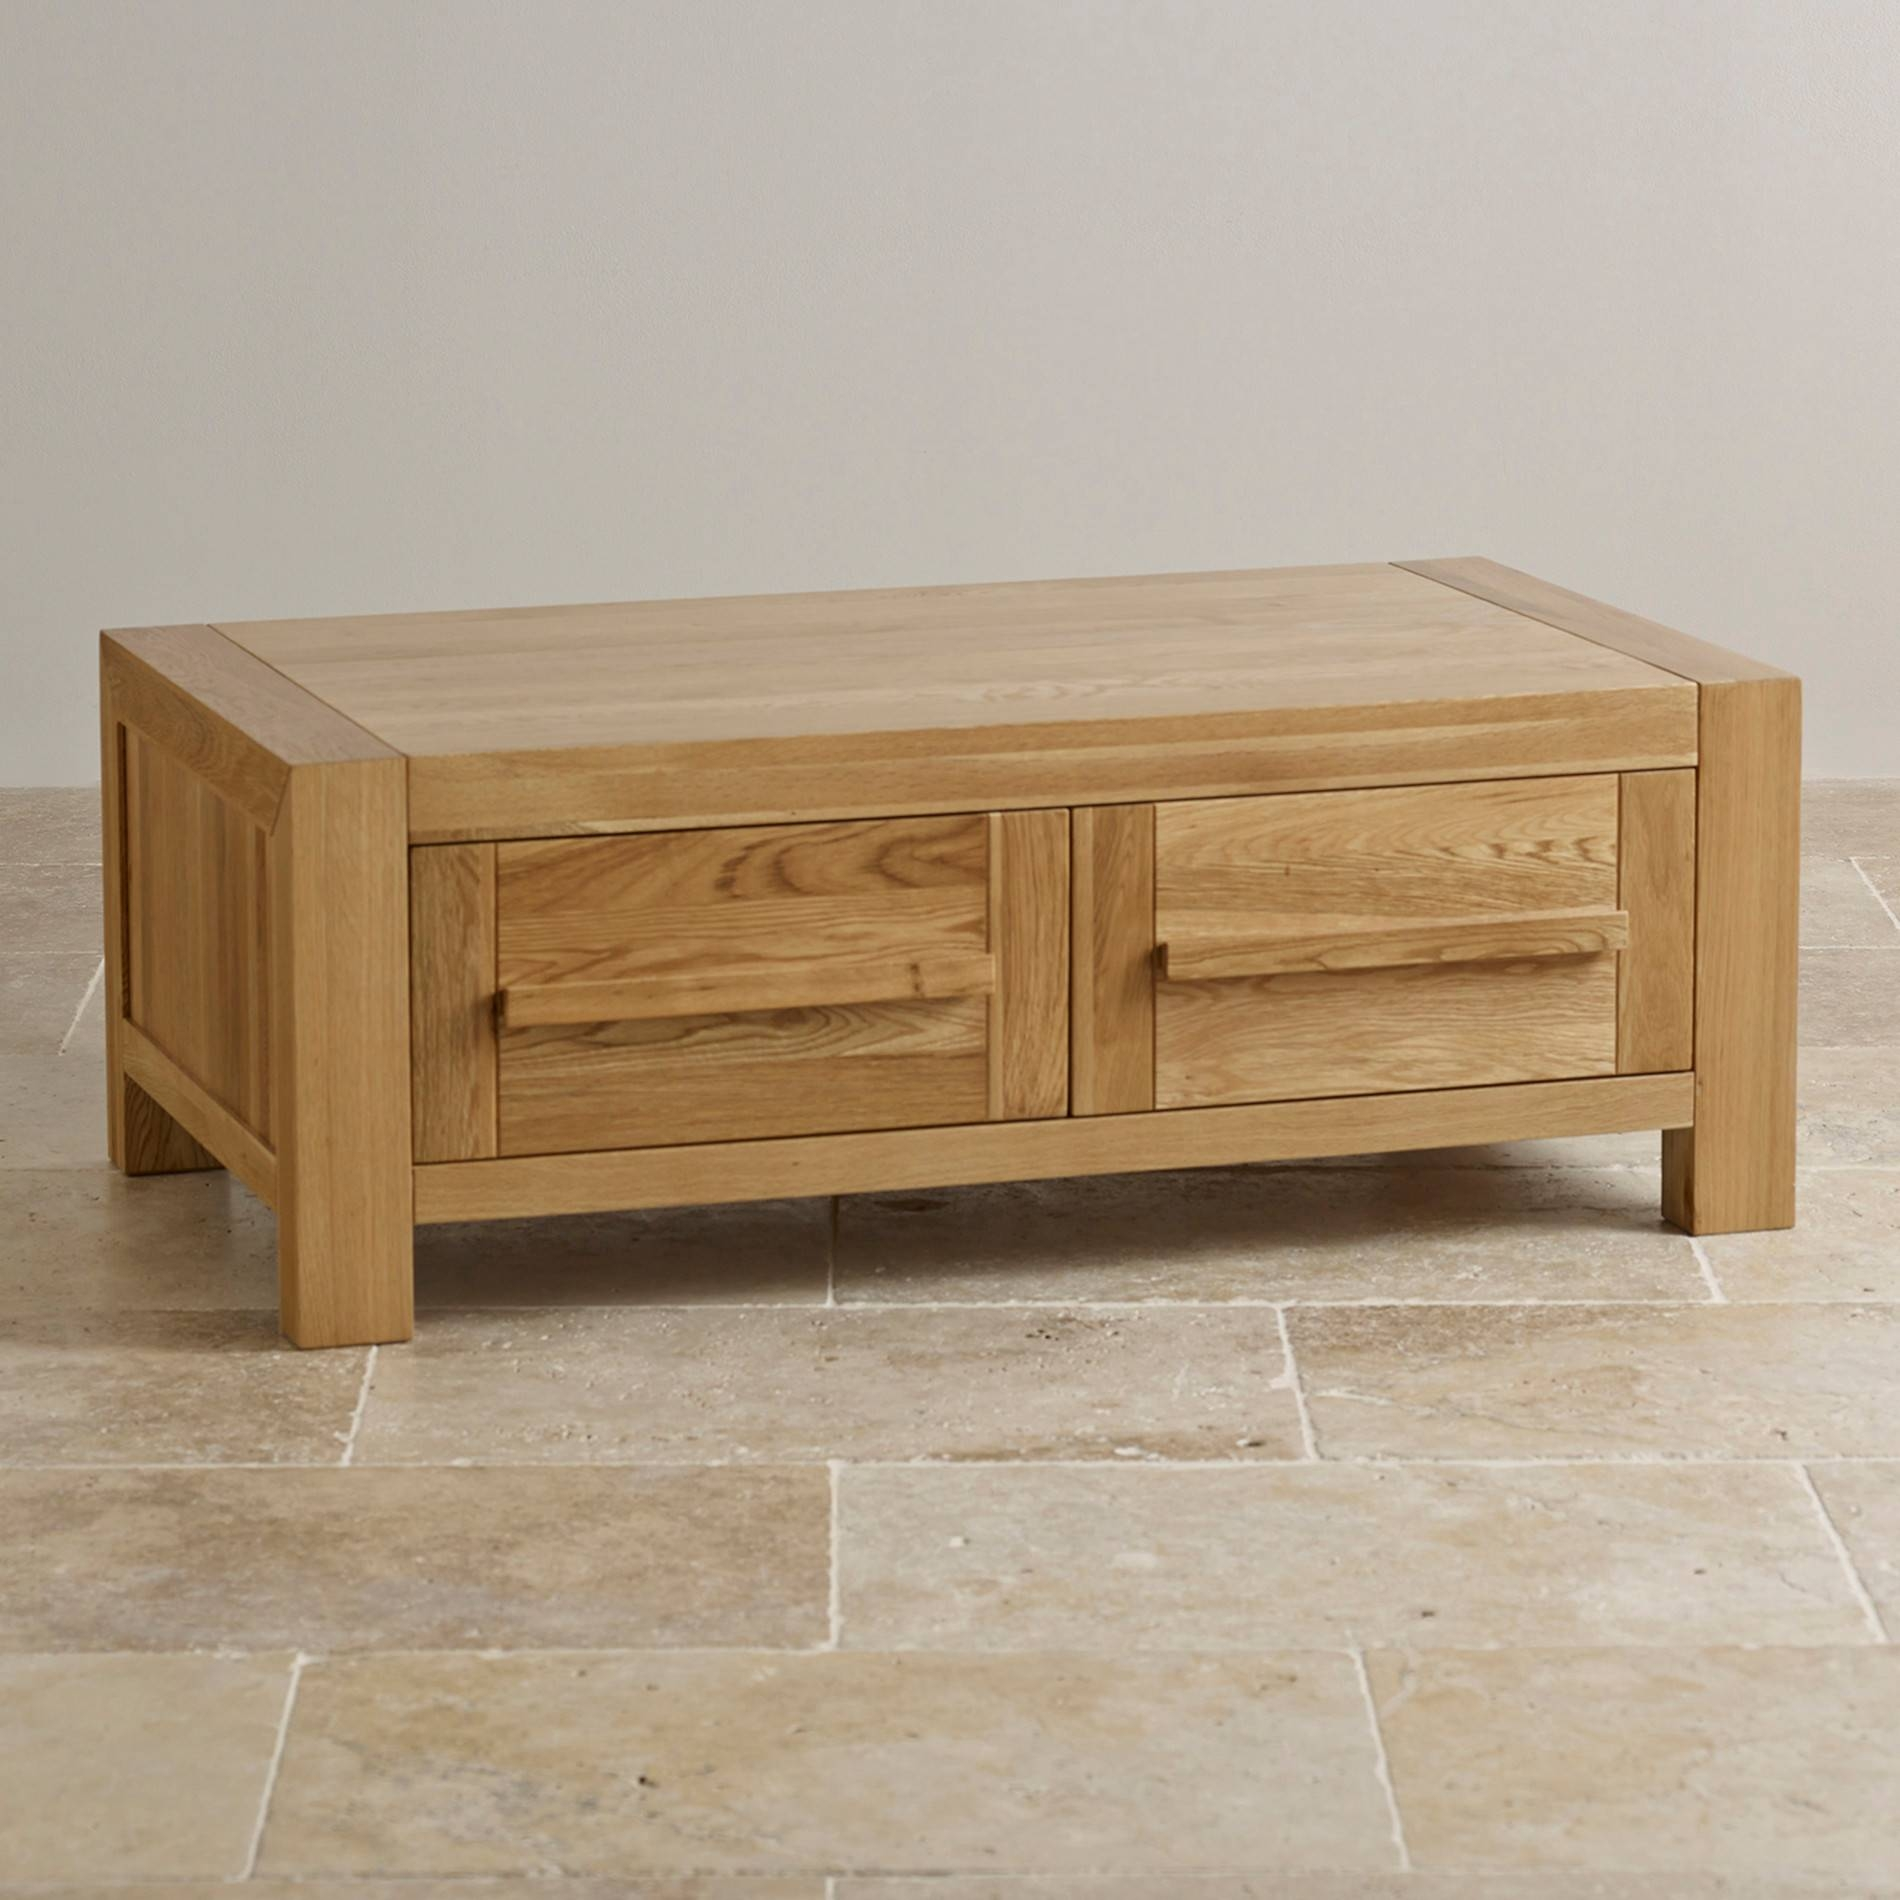 Popular Photo of Solid Oak Coffee Table With Storage